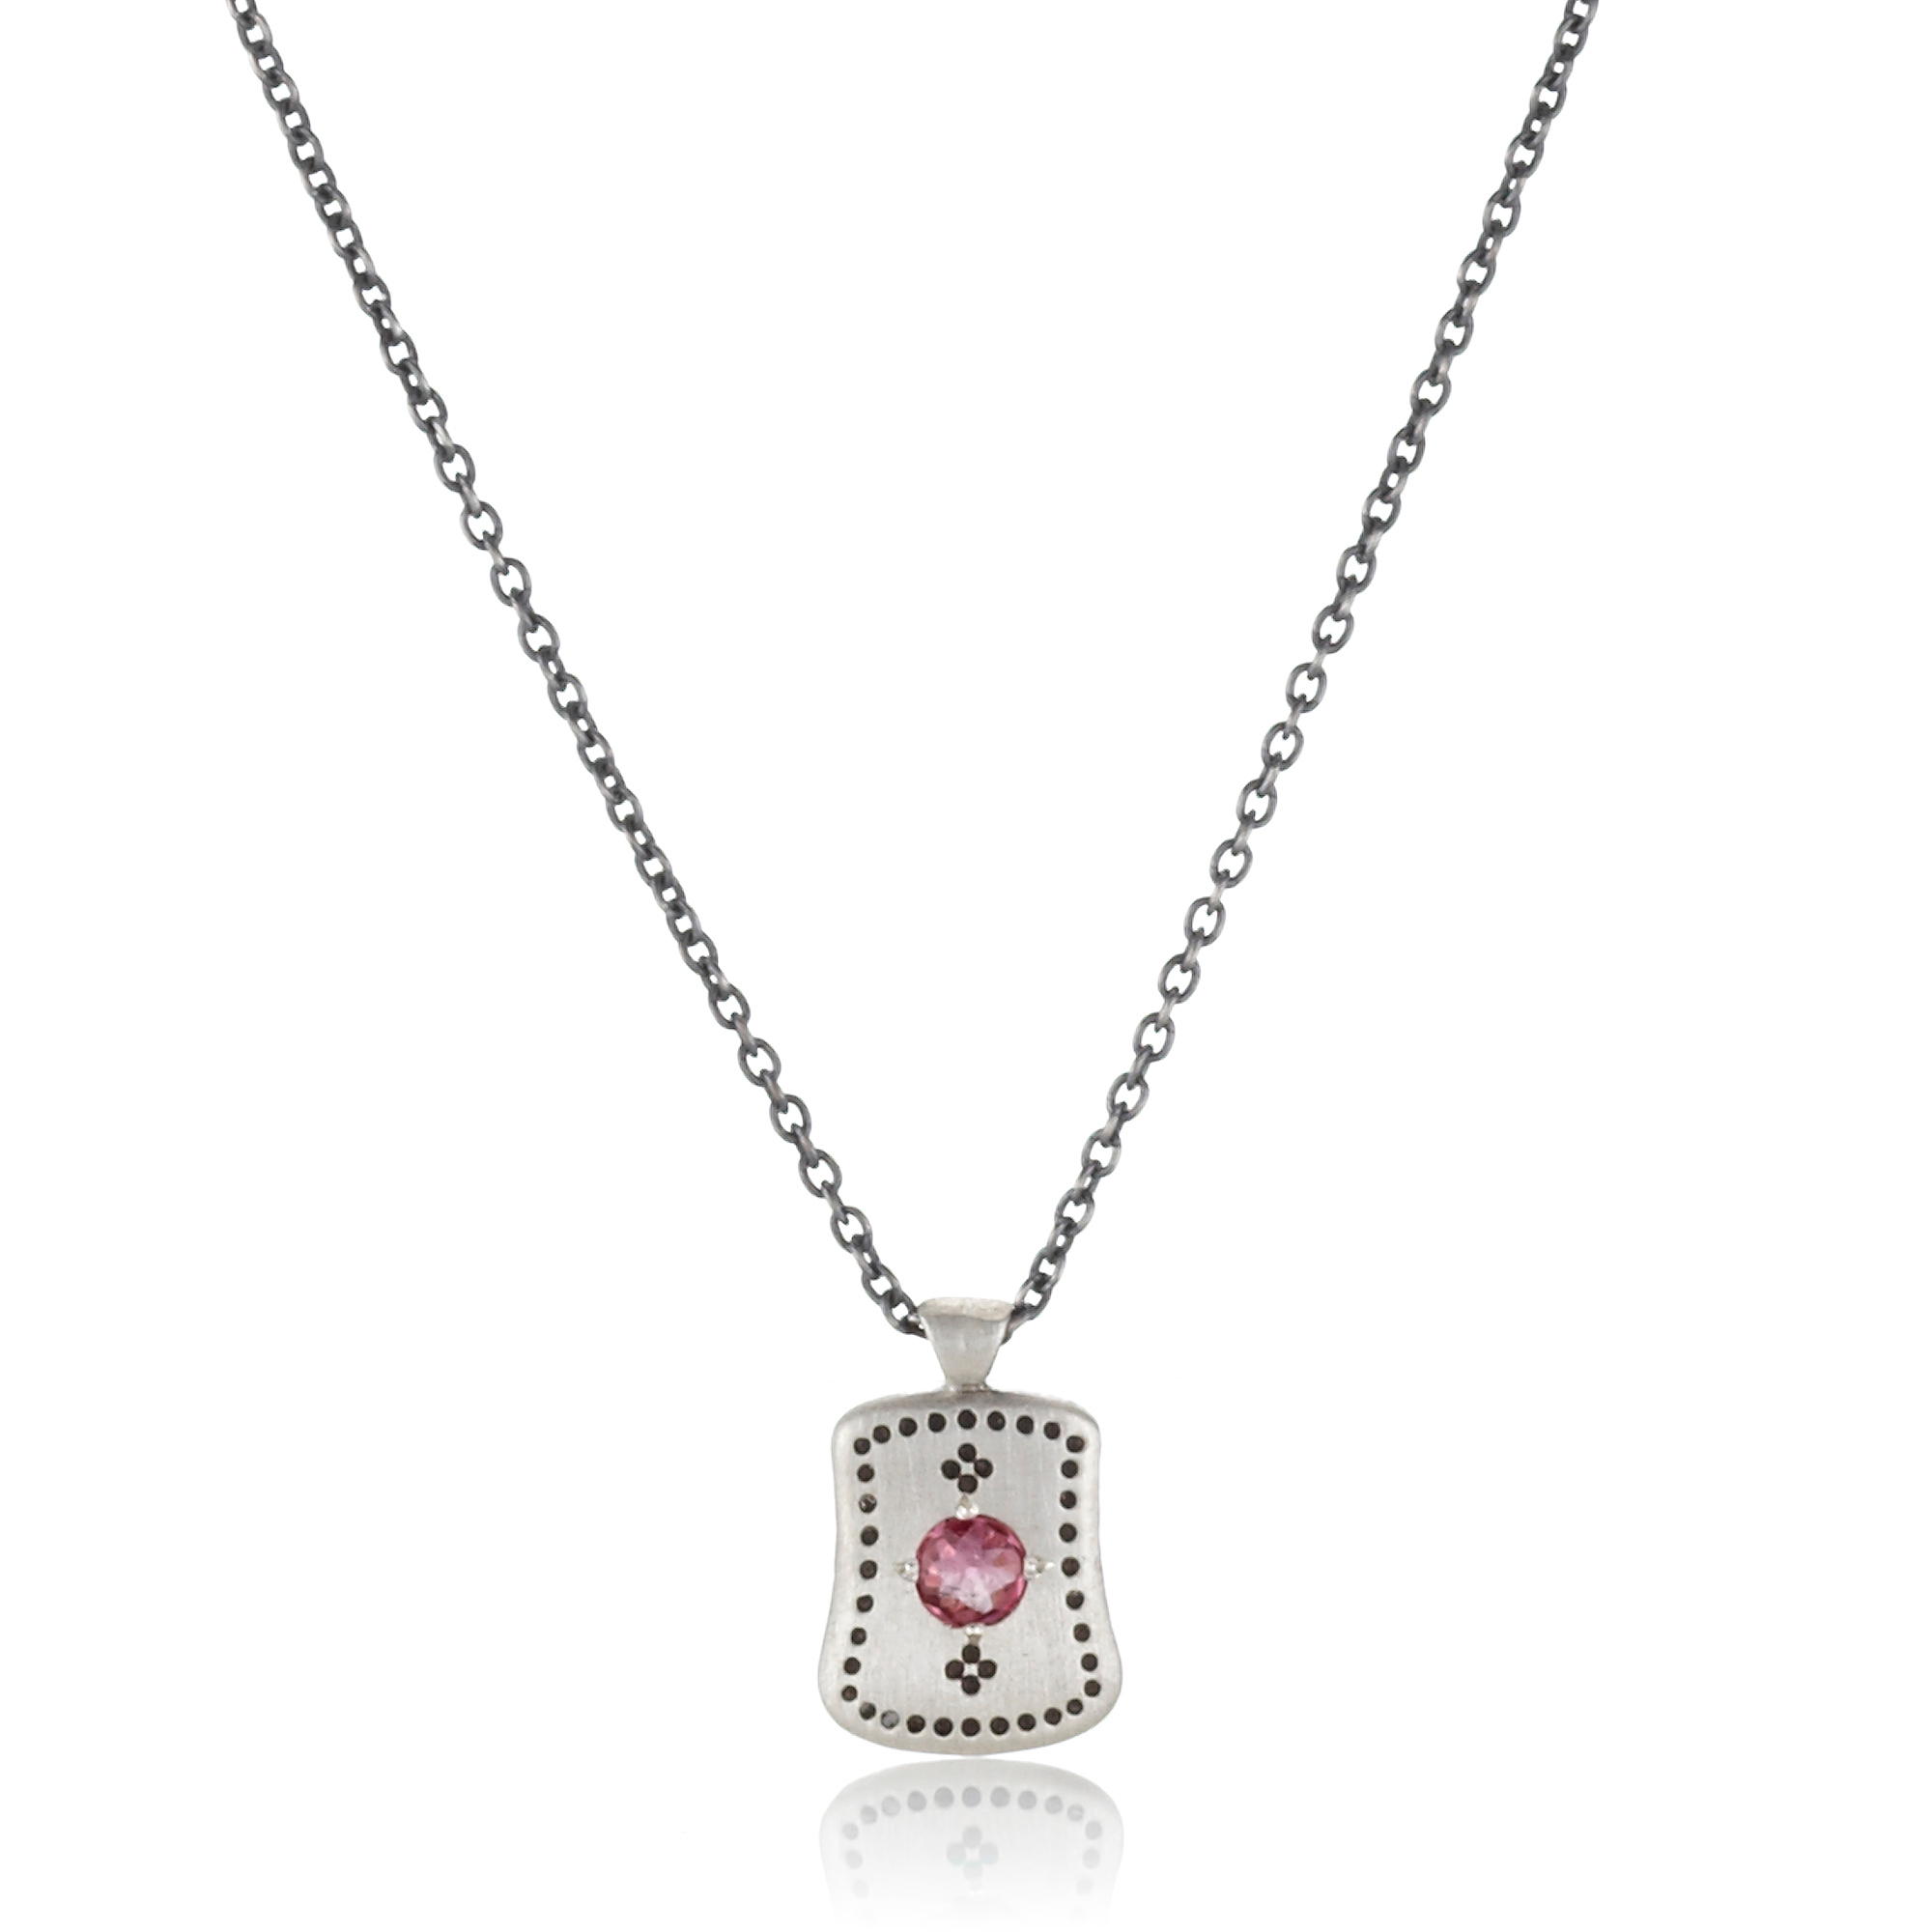 Adel Chefridi Pink Tourmaline Dotted Silver Pendant Necklace